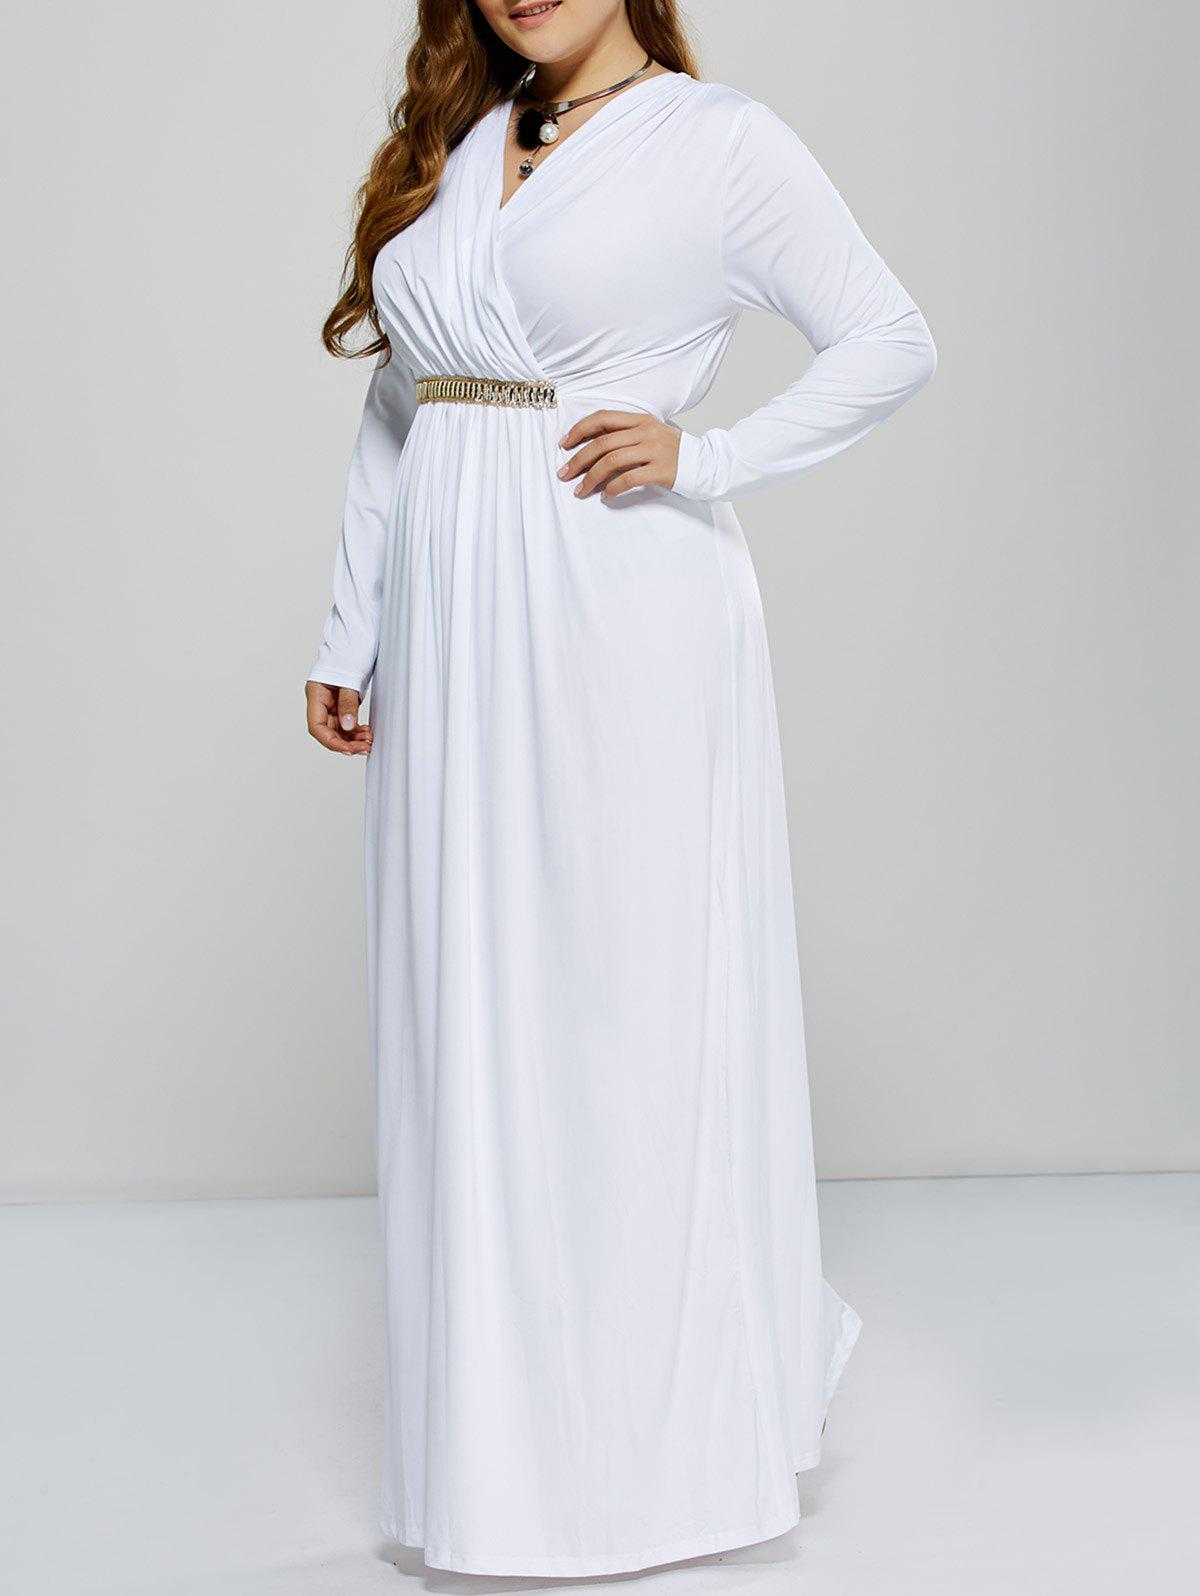 5bd7d6773ed 27% OFF  Plus Size Maxi Surplice Long Sleeve Prom Dress